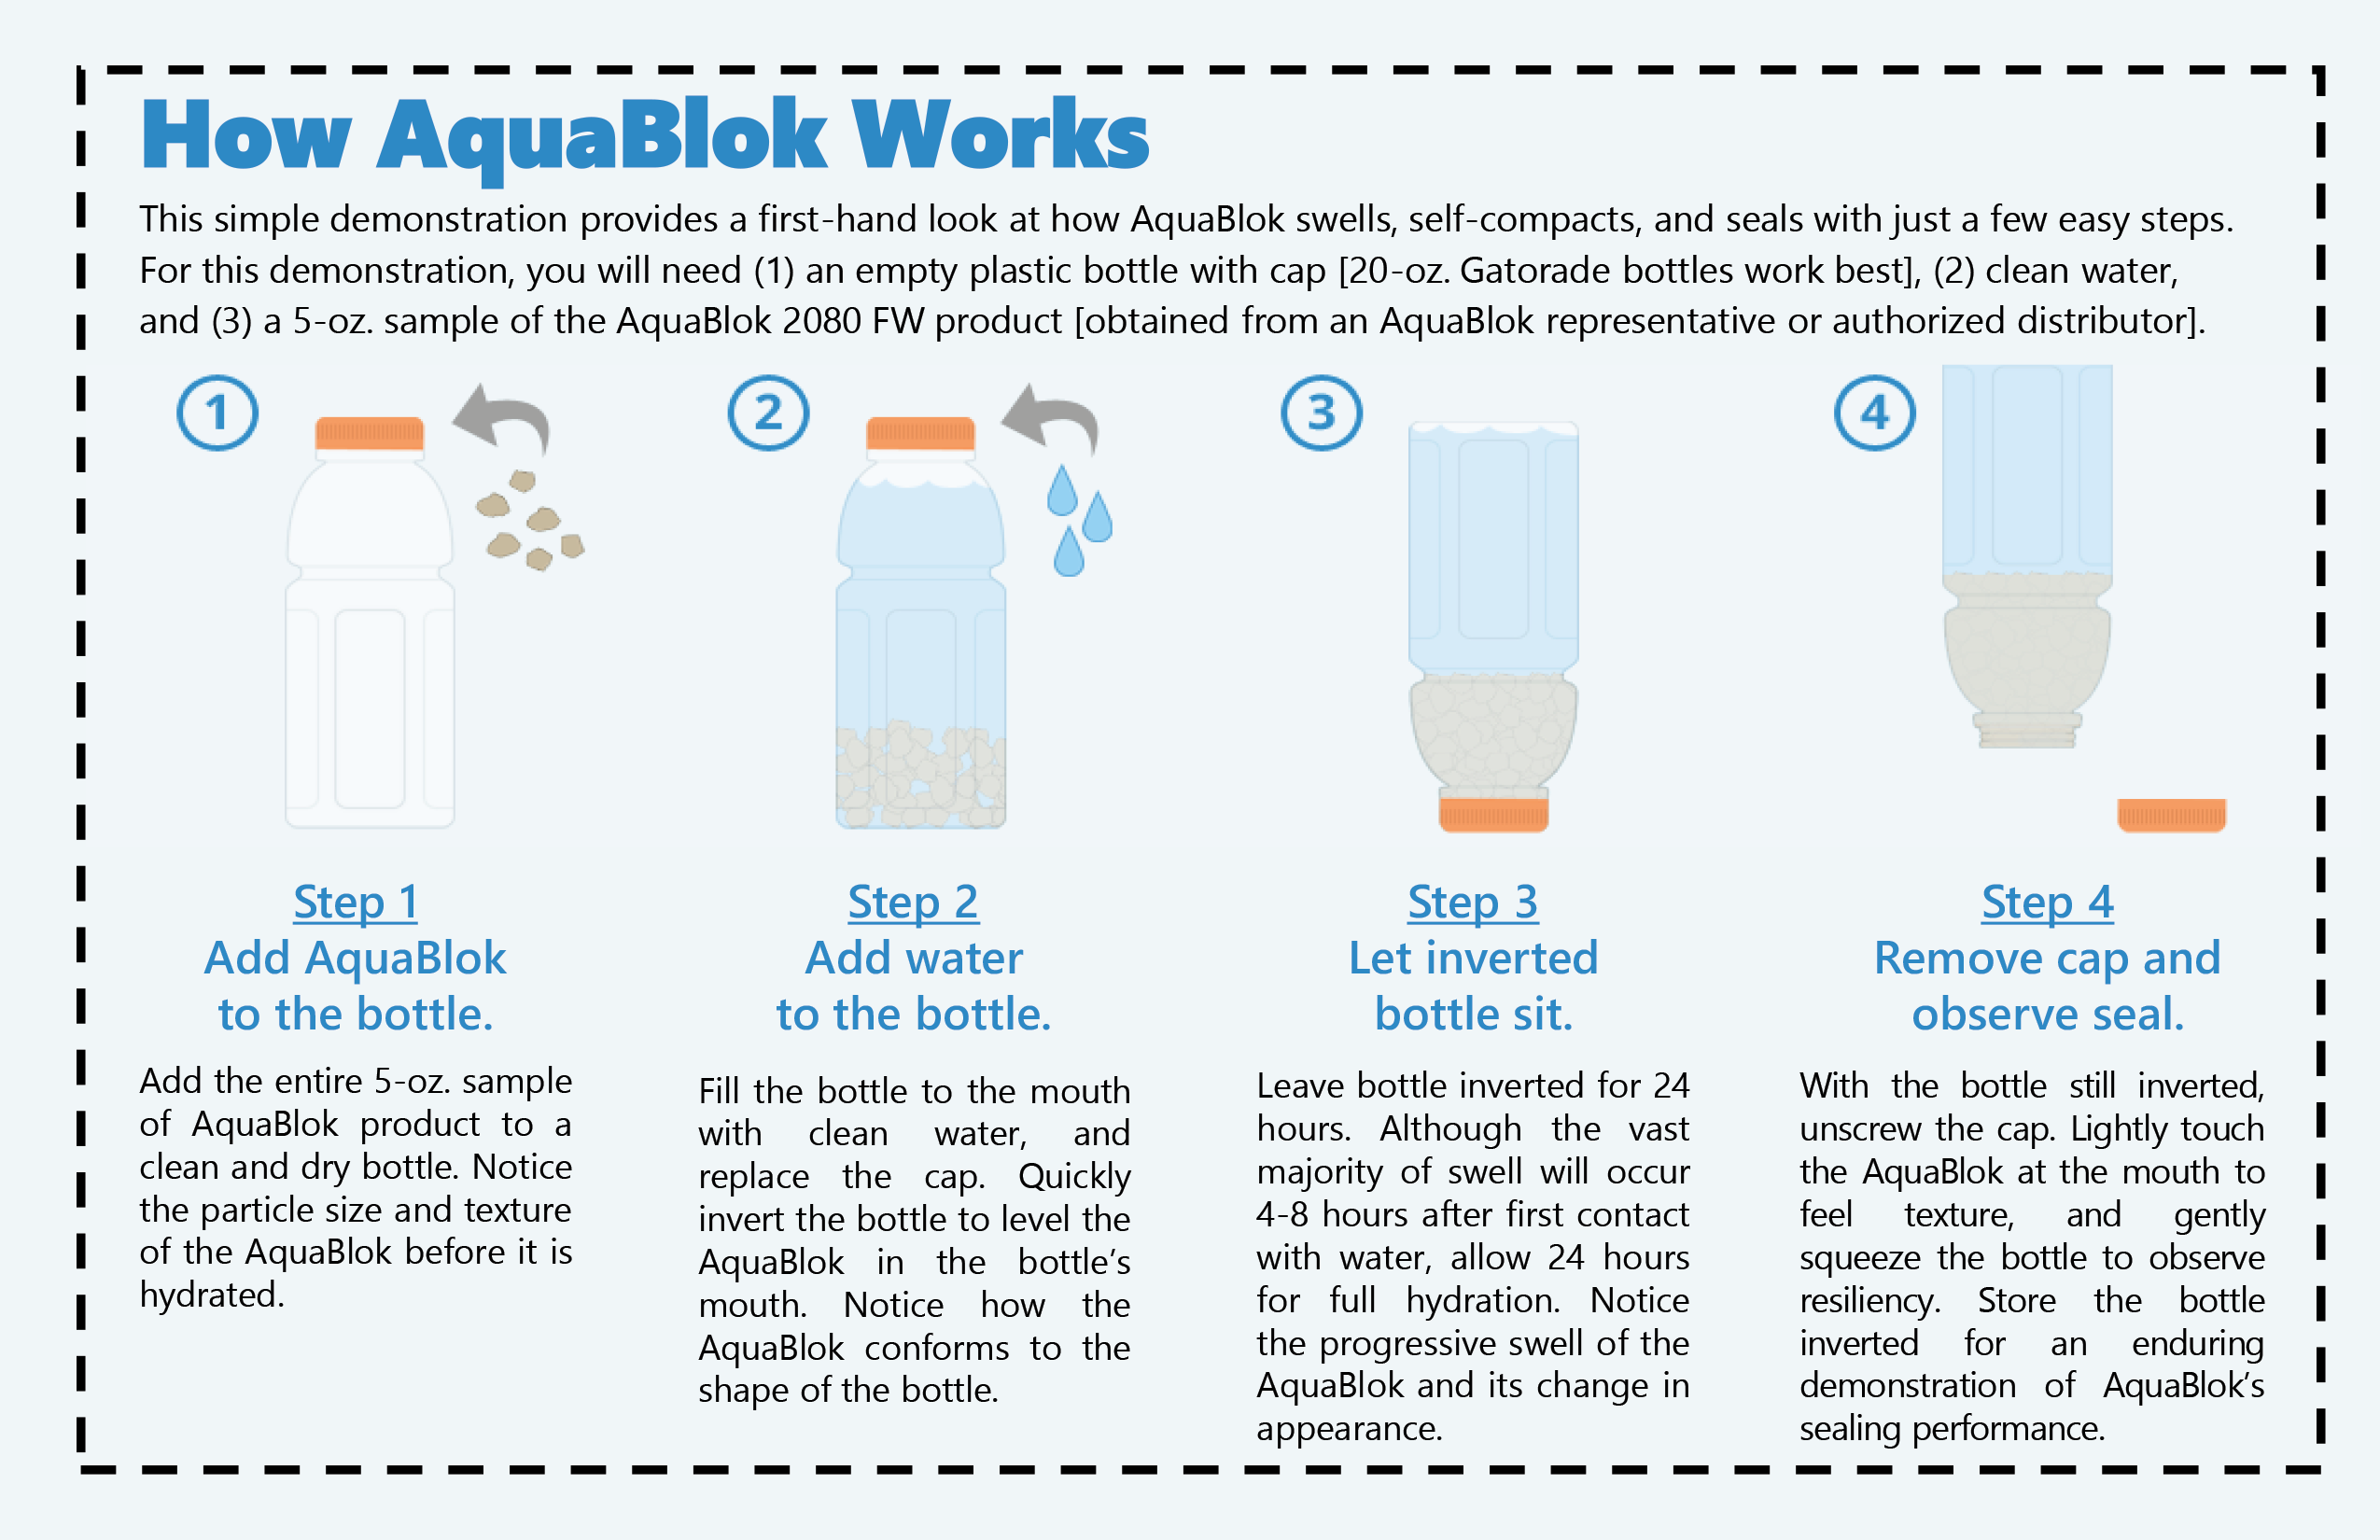 How it works graphic for AquaBlok